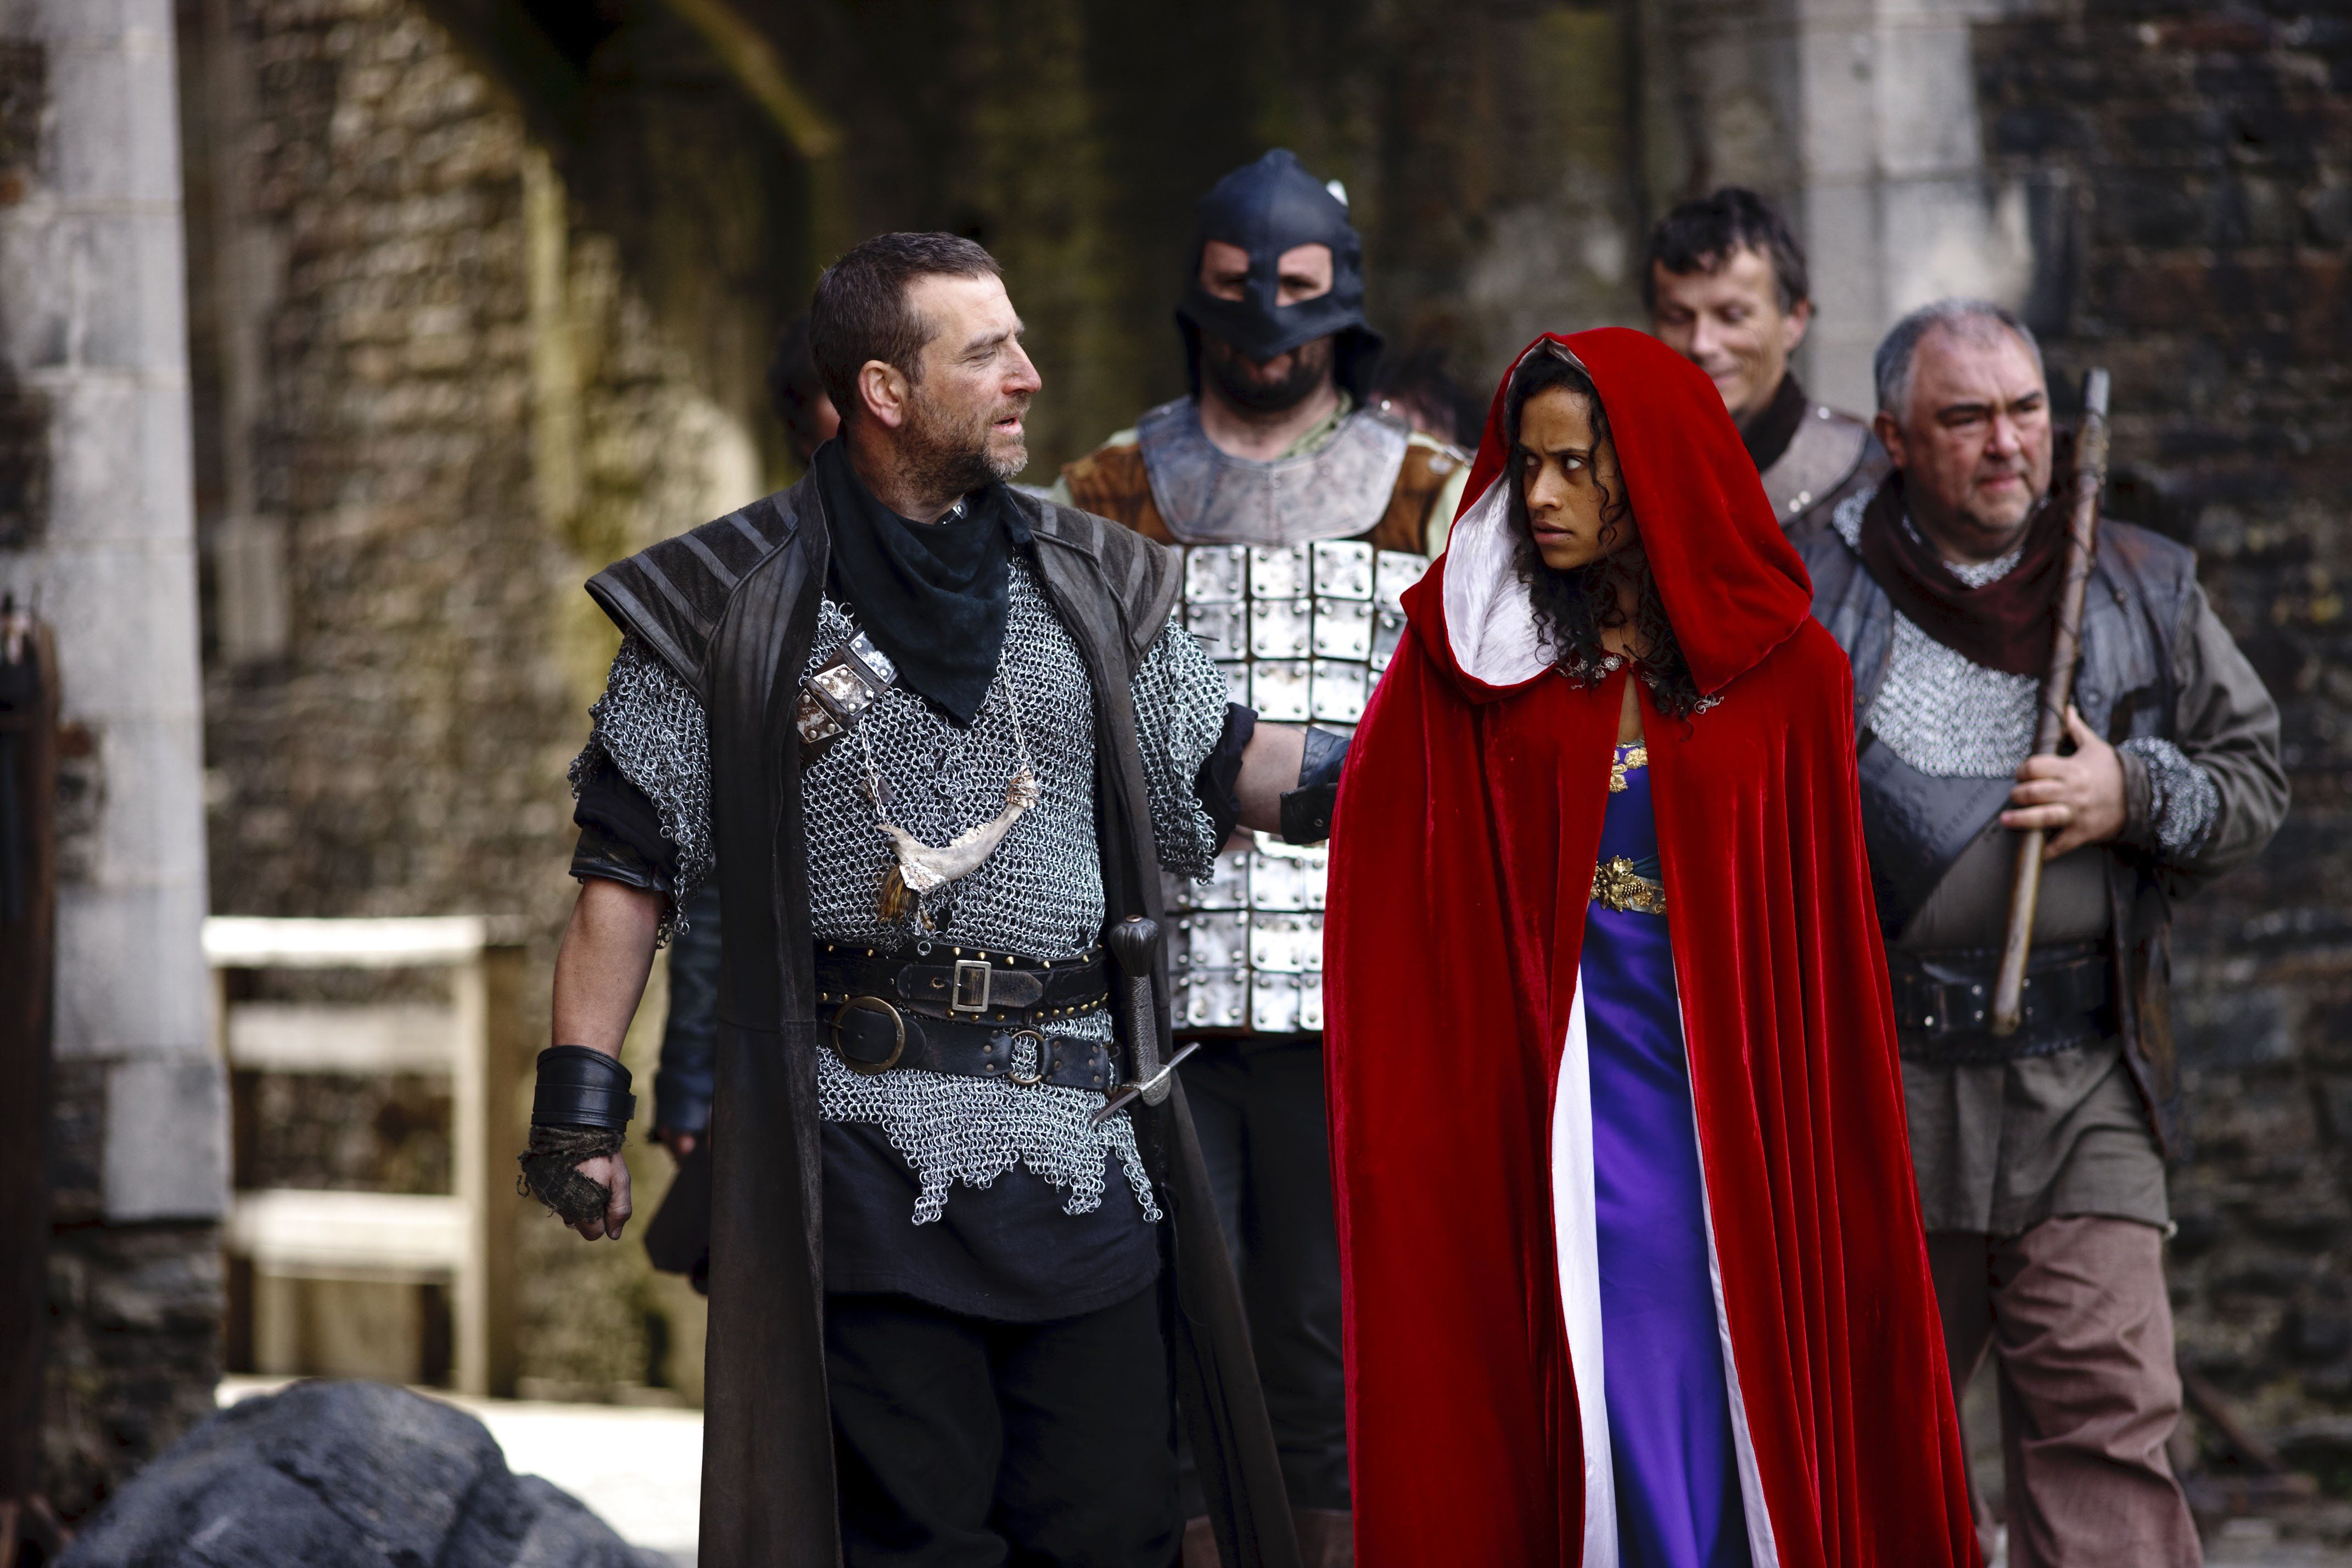 Merlin - Guinevere and Kendrick